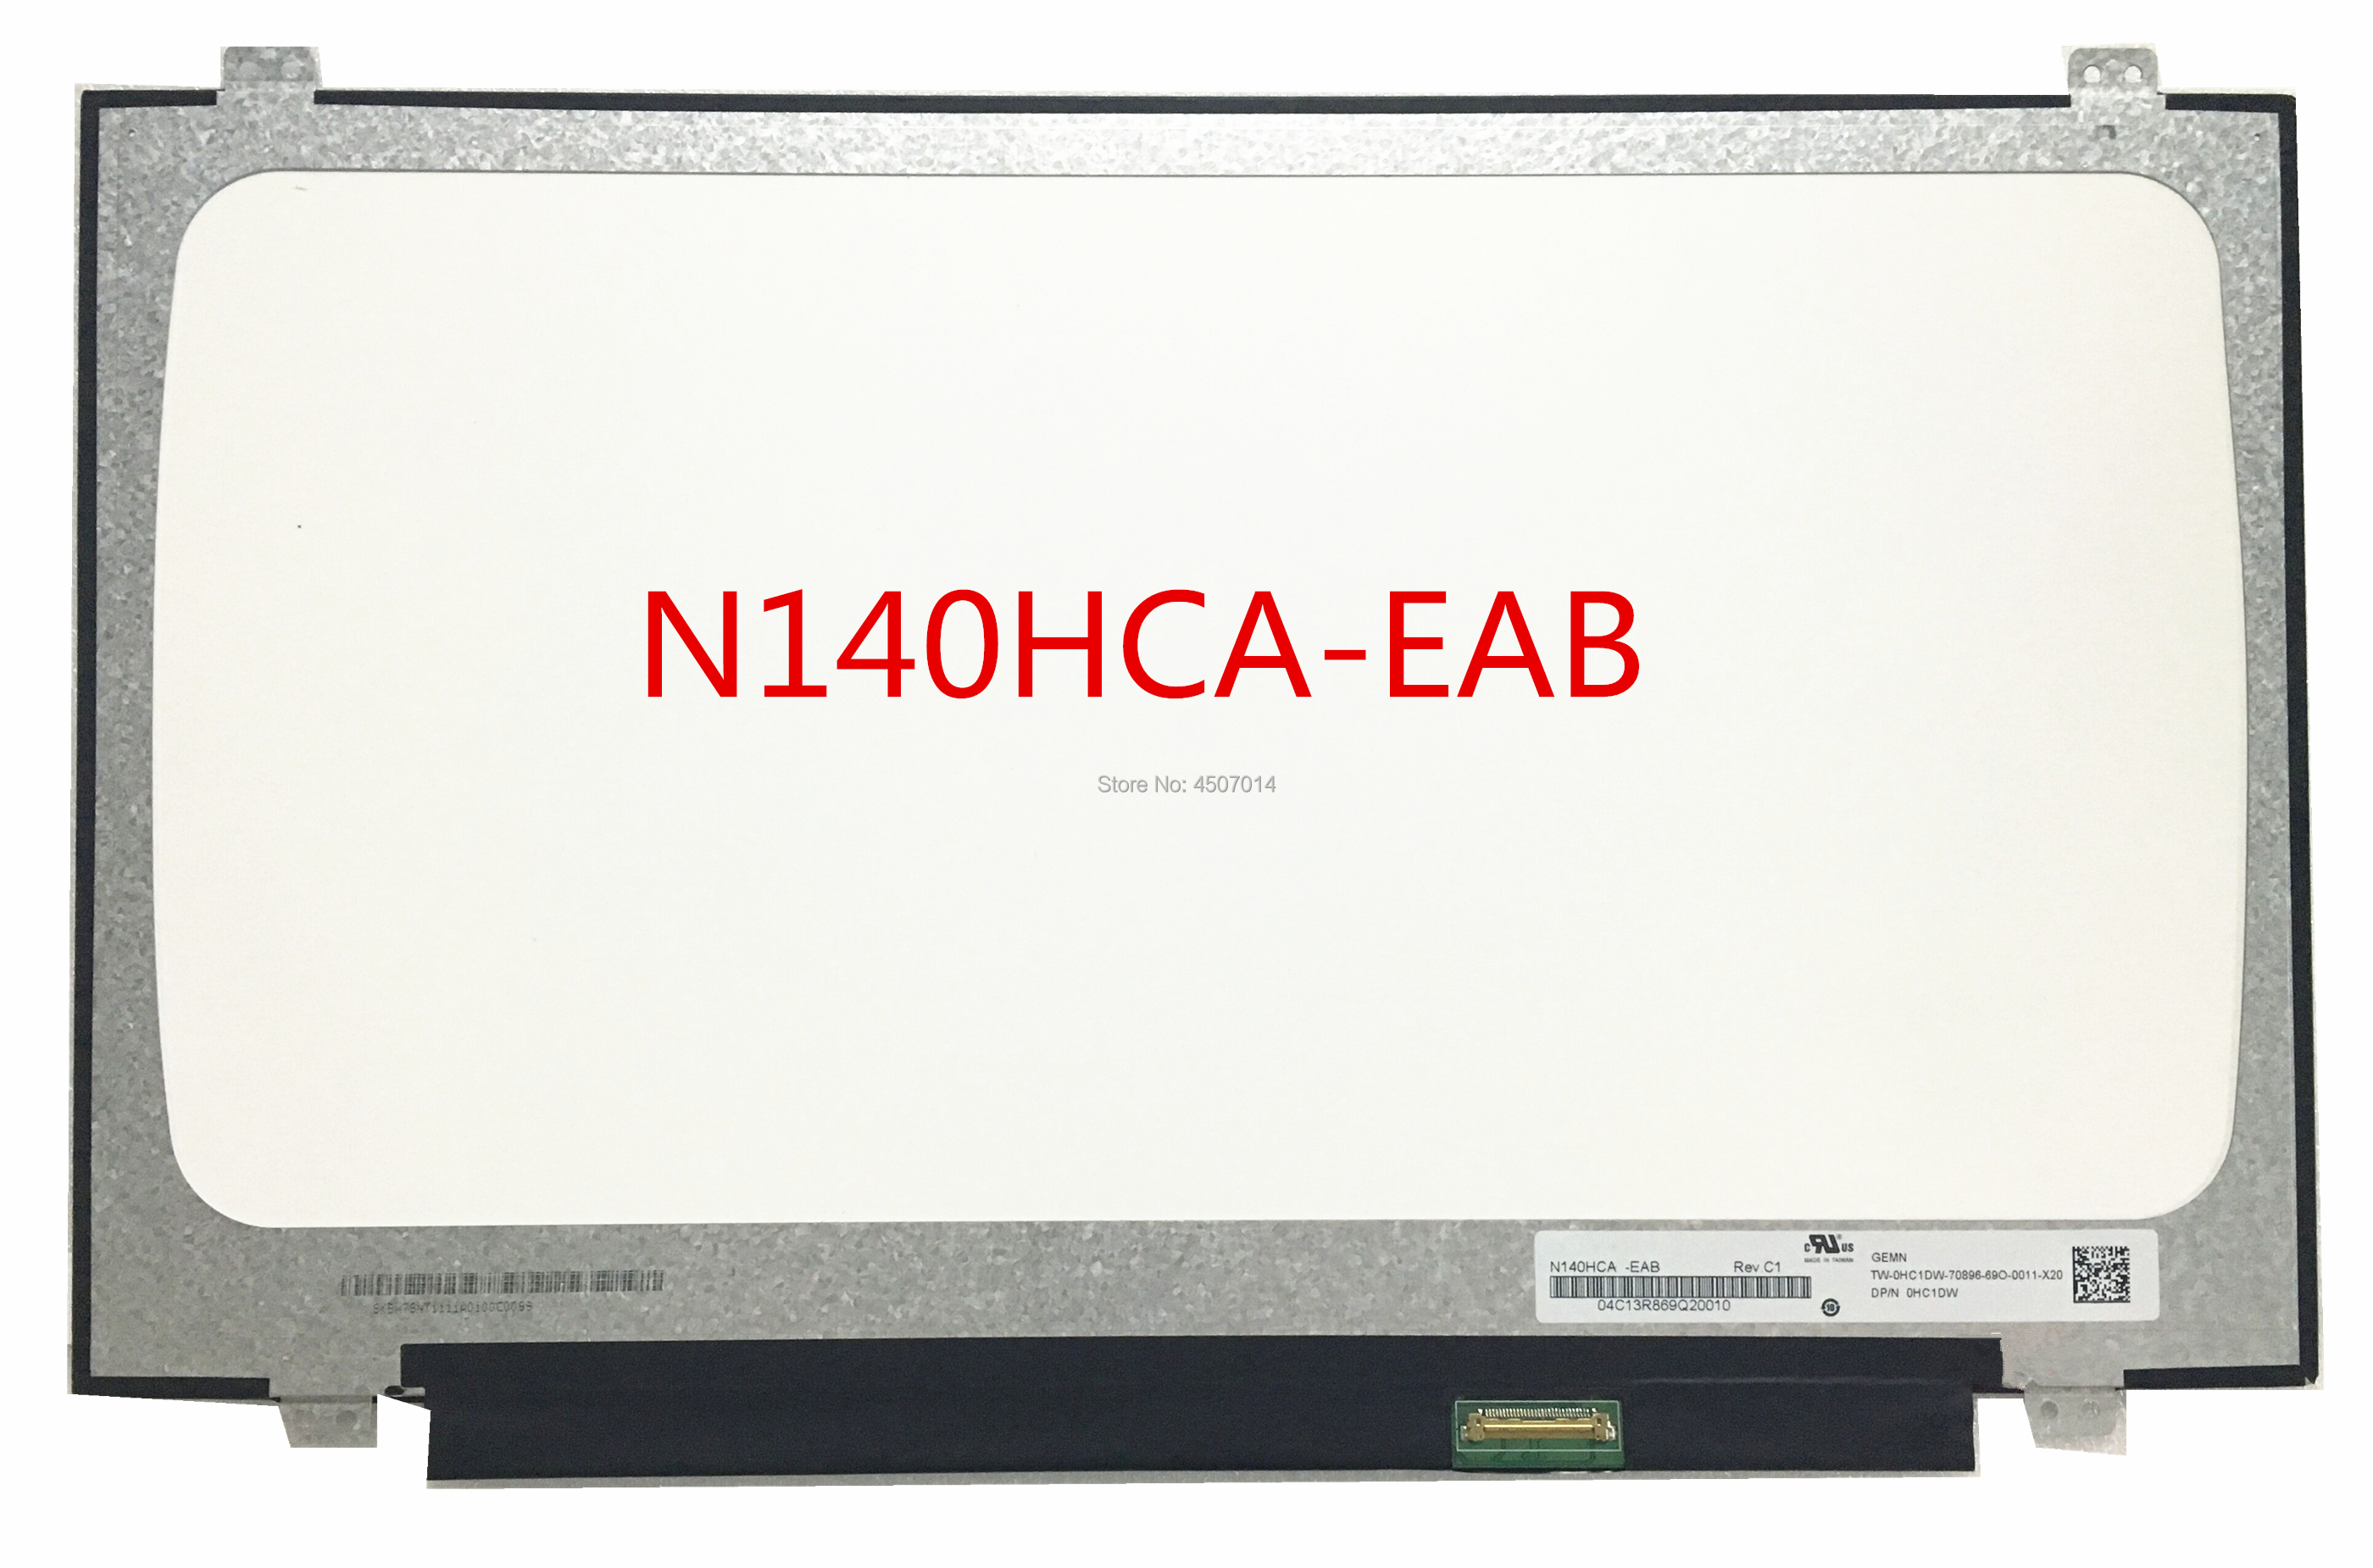 Free Shipping N140HCA-EAB N140HCA EAB 14.0inch Laptop Lcd Screen IPS 1920*1080 EDP 30 PinsFree Shipping N140HCA-EAB N140HCA EAB 14.0inch Laptop Lcd Screen IPS 1920*1080 EDP 30 Pins